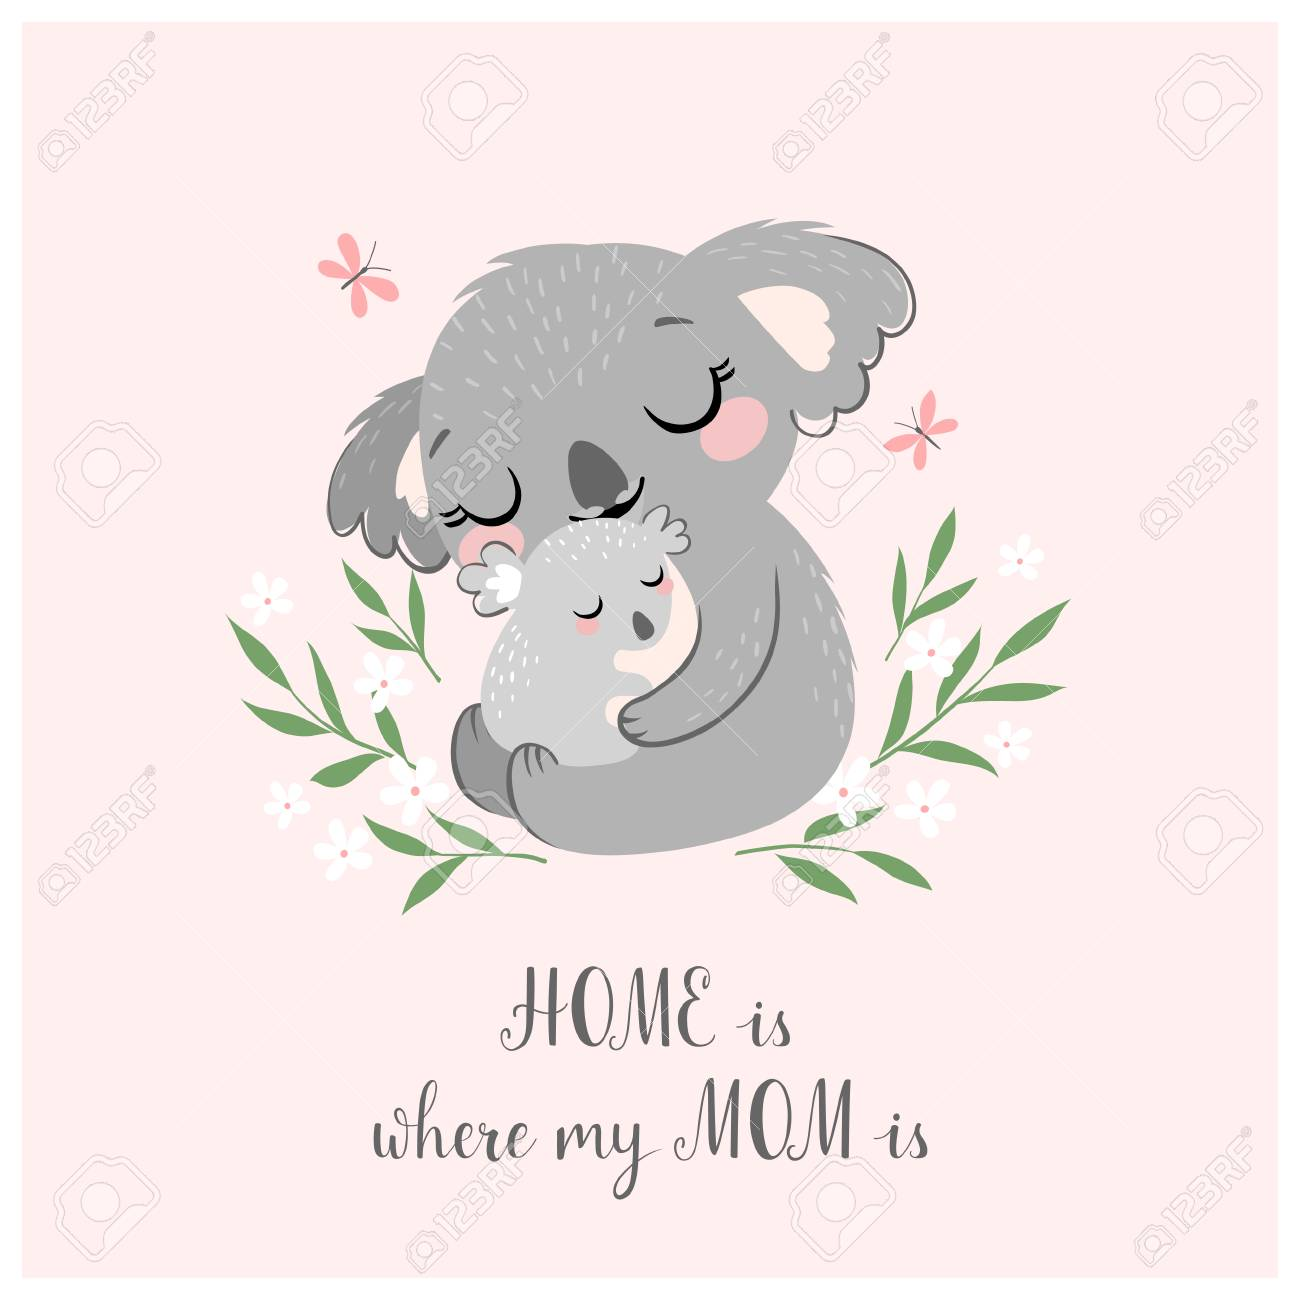 Mother's day greeting card or poster with cute koala mother and baby on pink background. - 96197825